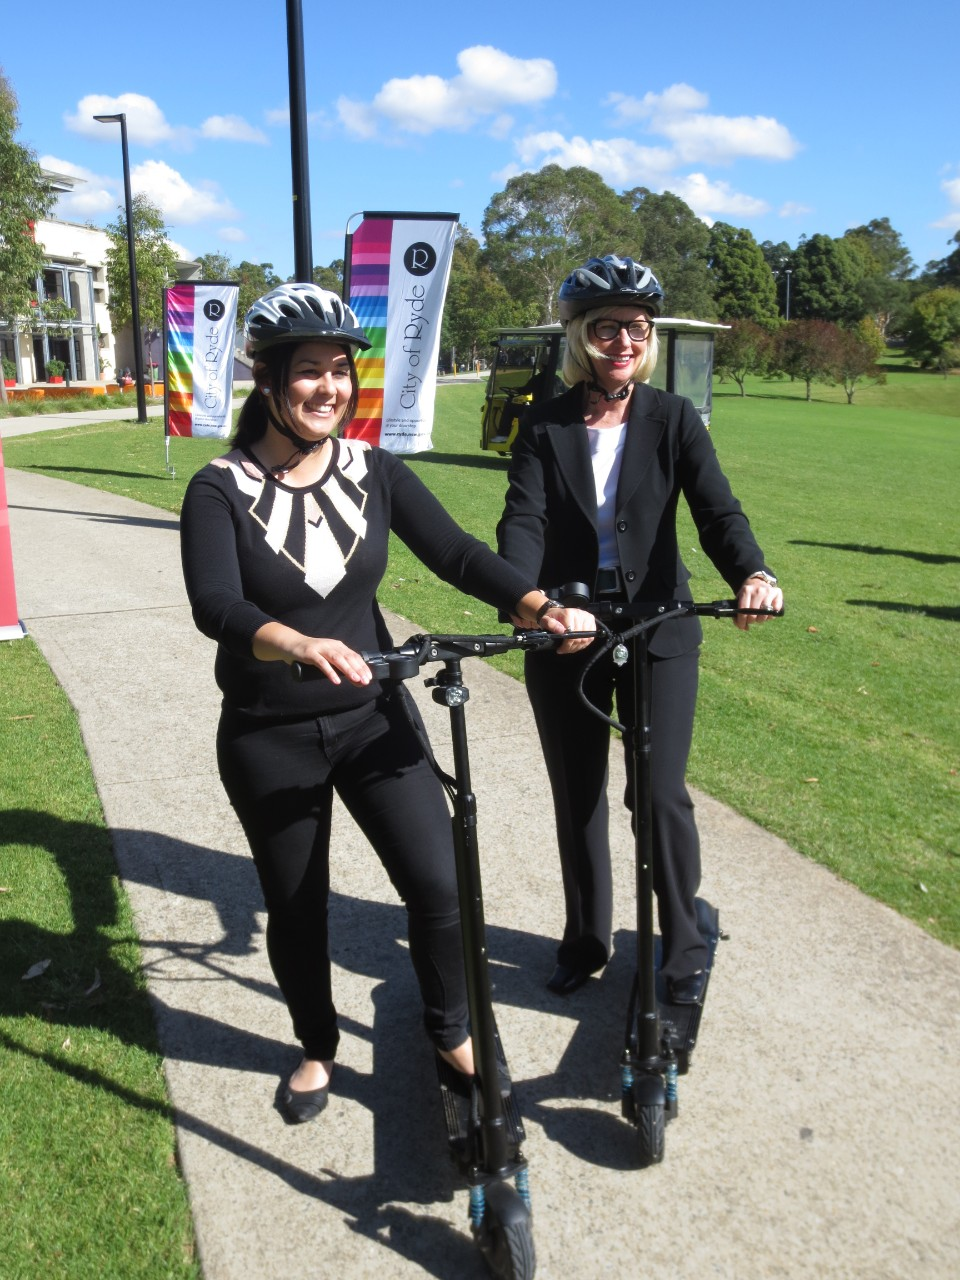 Personal mobility devices, known as PMDs, are more disruptive and a less successful sustainable transport option thus far in Australia. Photo: Professor Robyn Dowling.